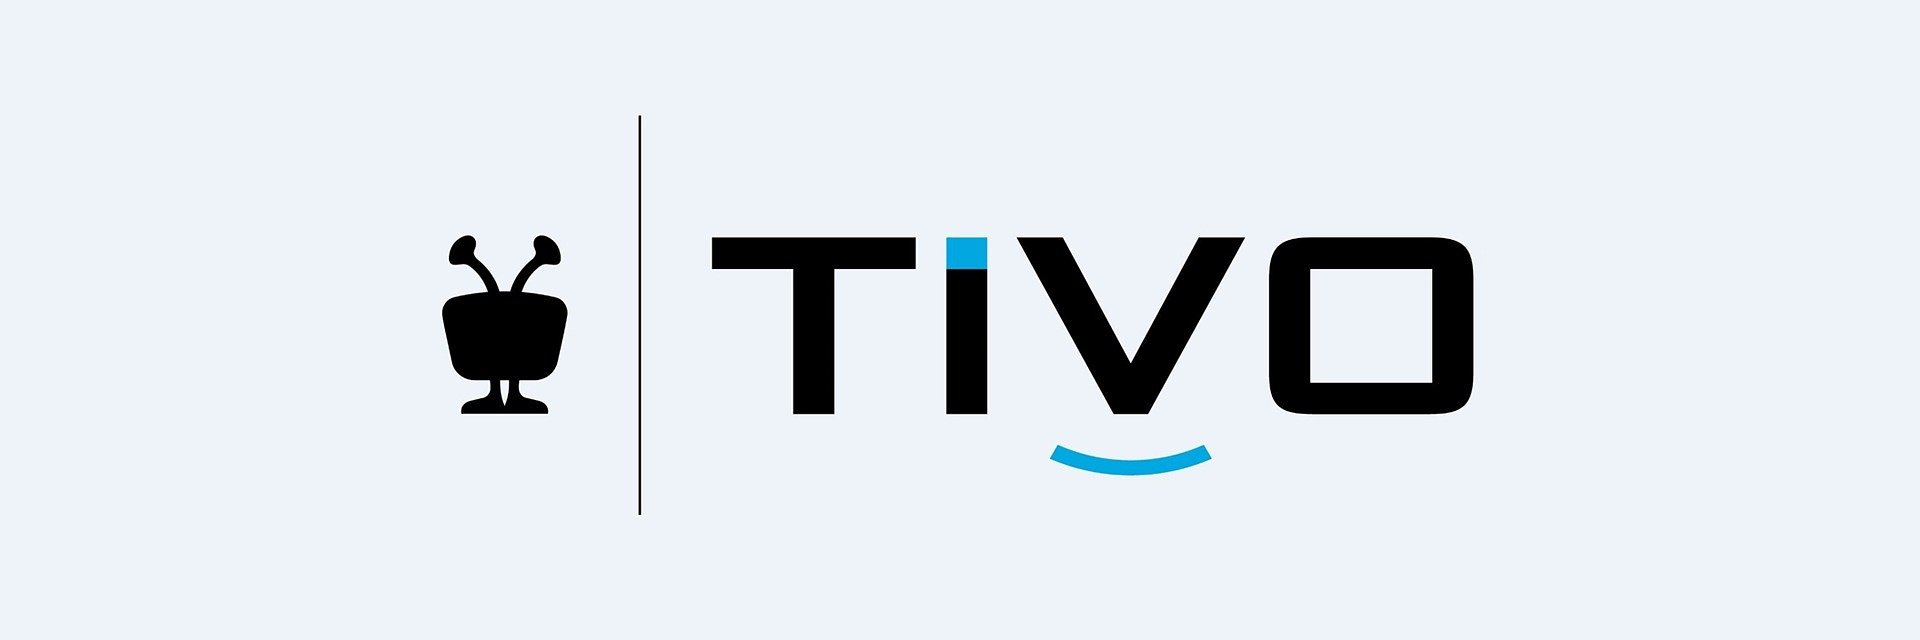 Loop Media, Inc. Announces Partnership With TiVo to Add 18 New Music Video Channels to the TiVo+ Content Network